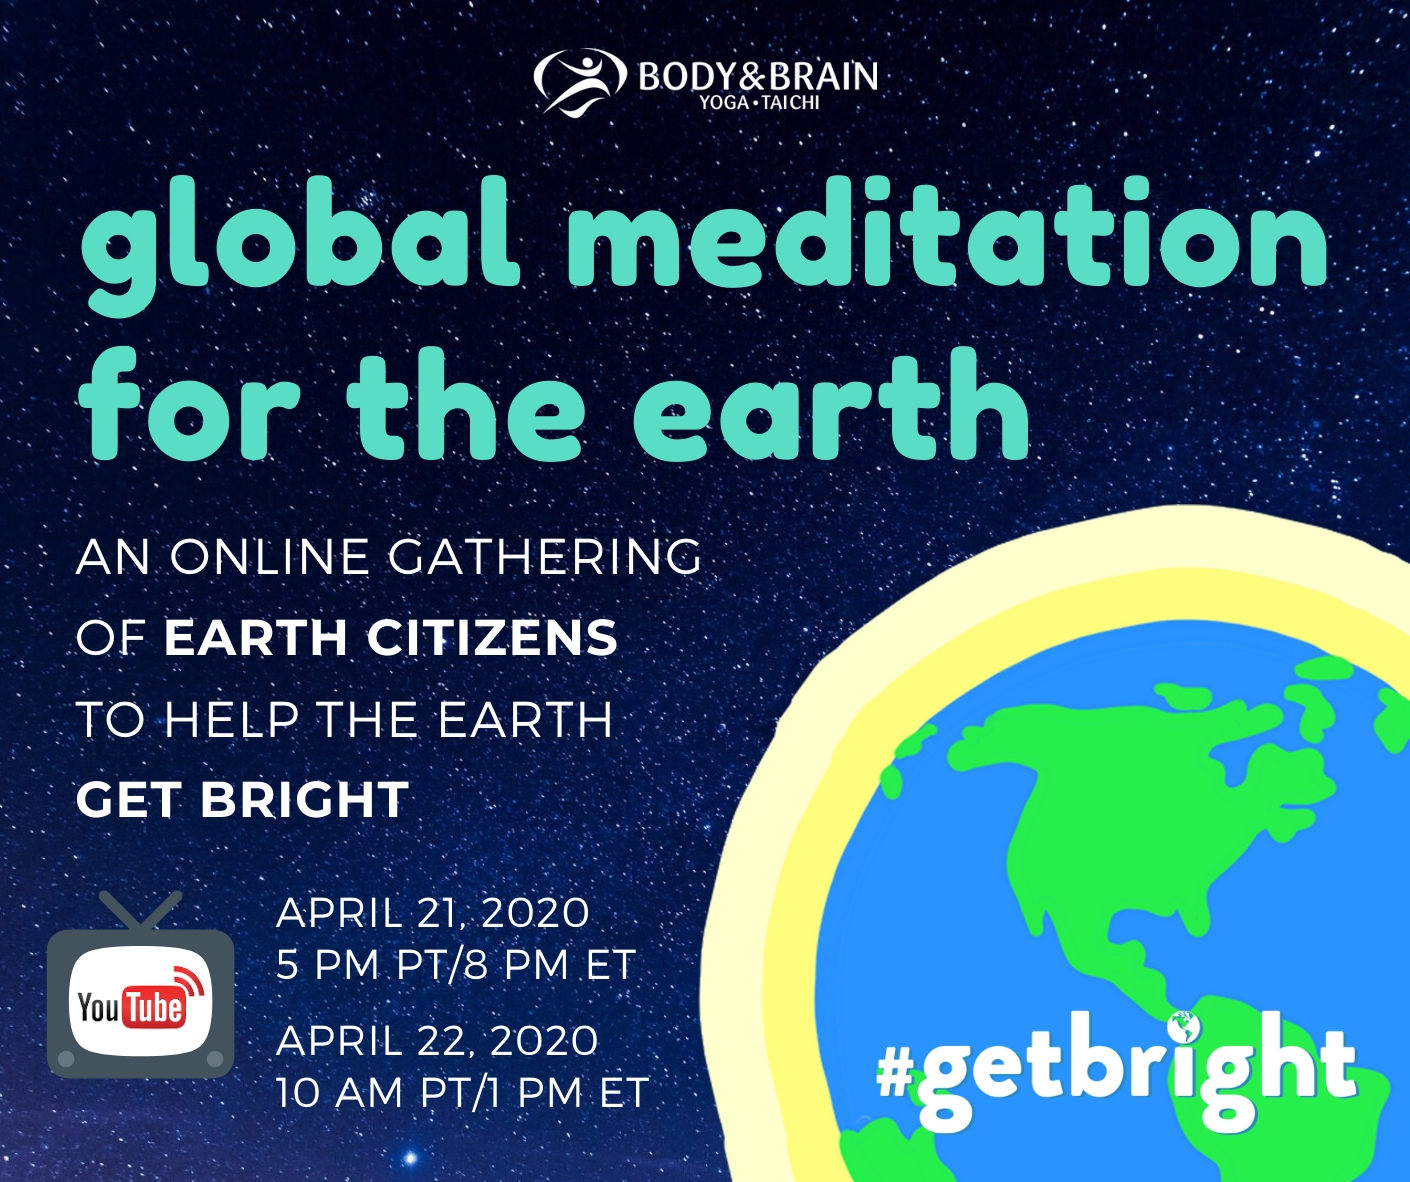 Global Meditation Earth Day Celebrations on YouTube